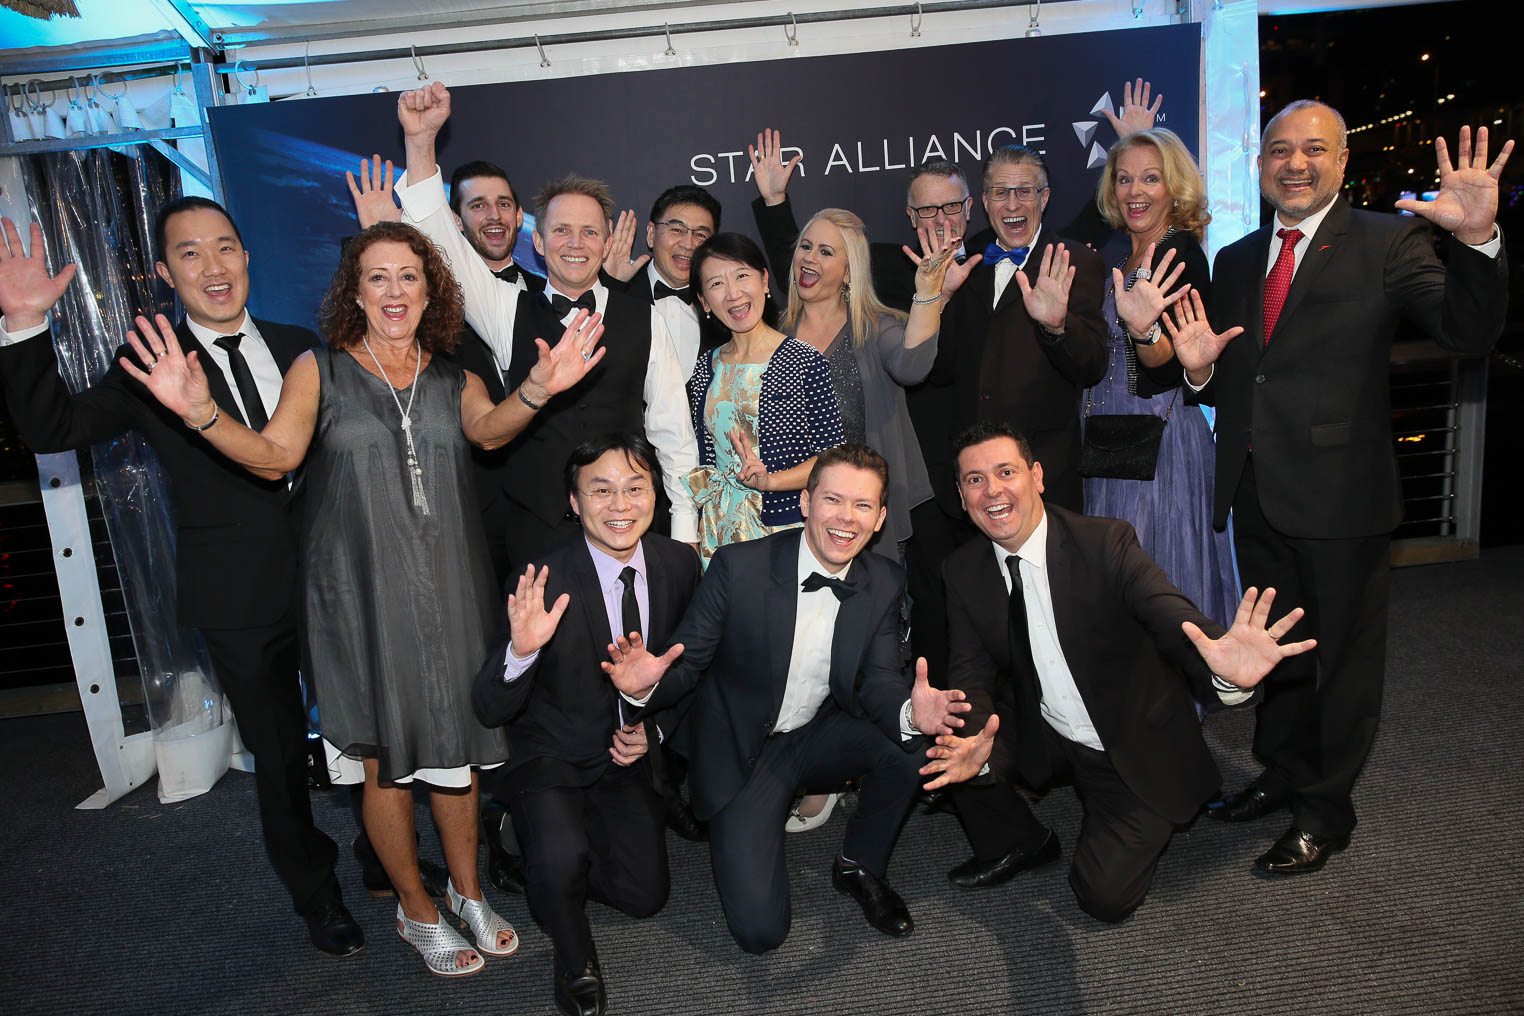 Star Alliance leaders at NTIA 2016